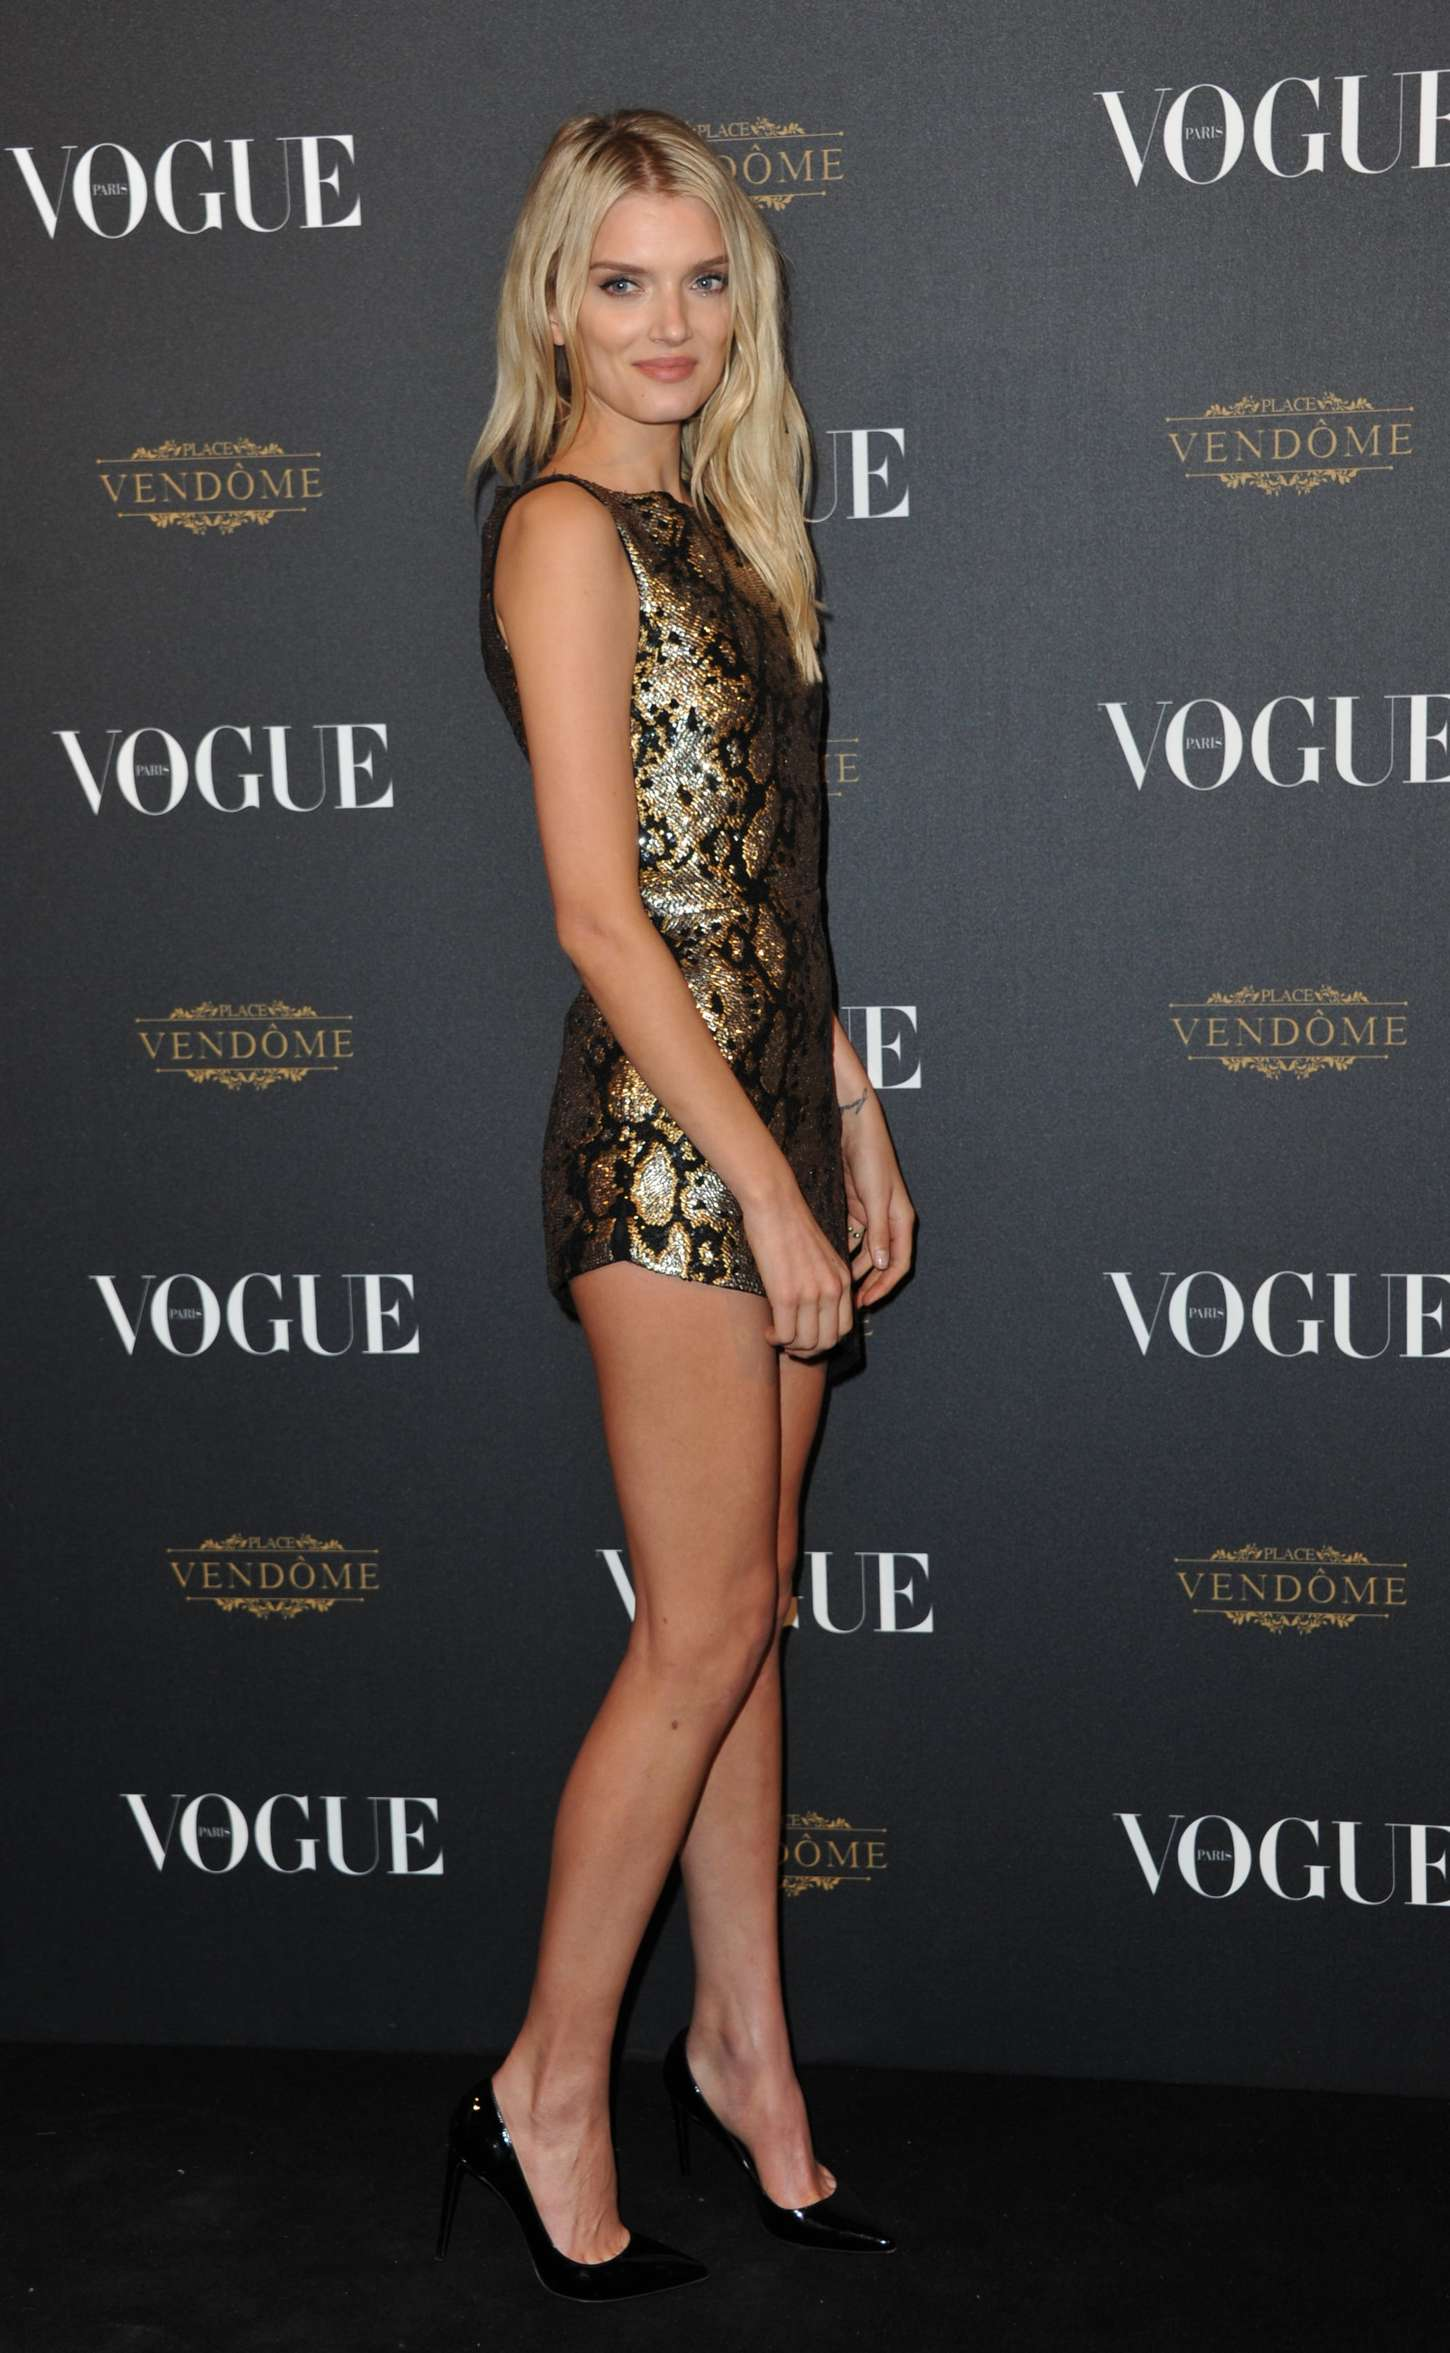 Lily Donaldson Vogue Anniversary Party in Paris